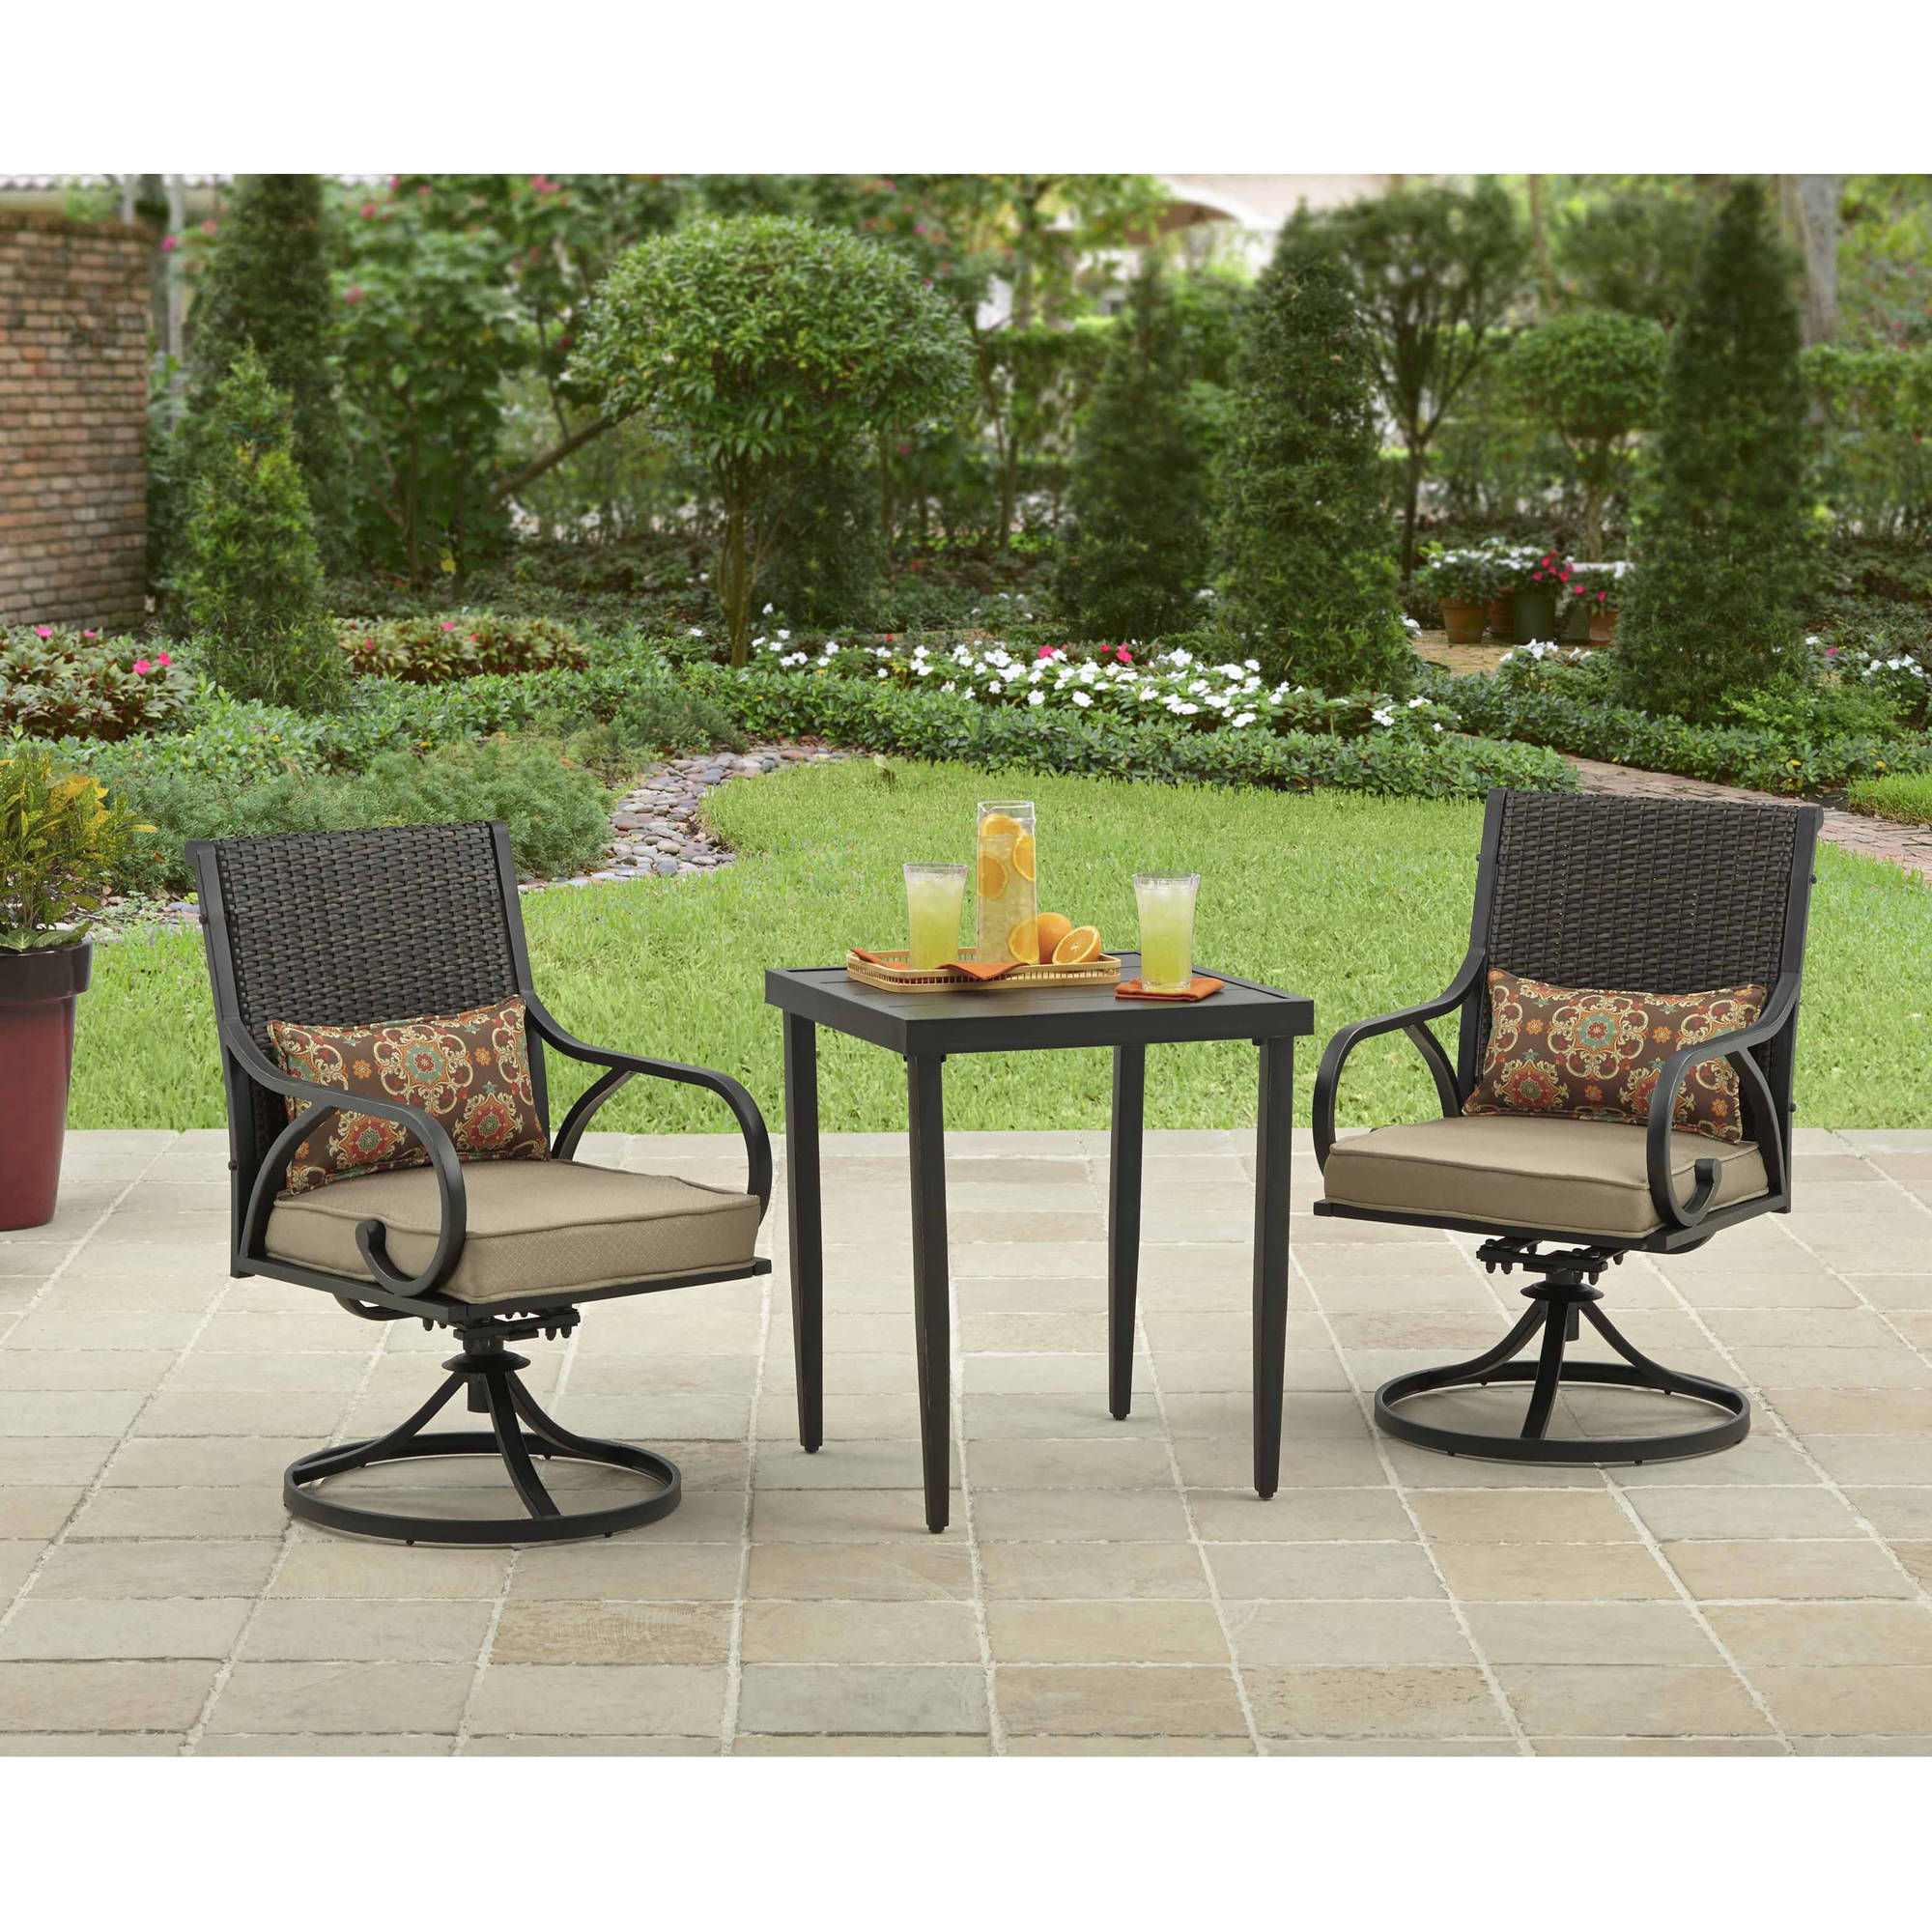 Better Homes and Gardens 3-Piece Layton Ridge Bistro Set by Bazhou Sanxin Steel Pipe Co.,Ltd